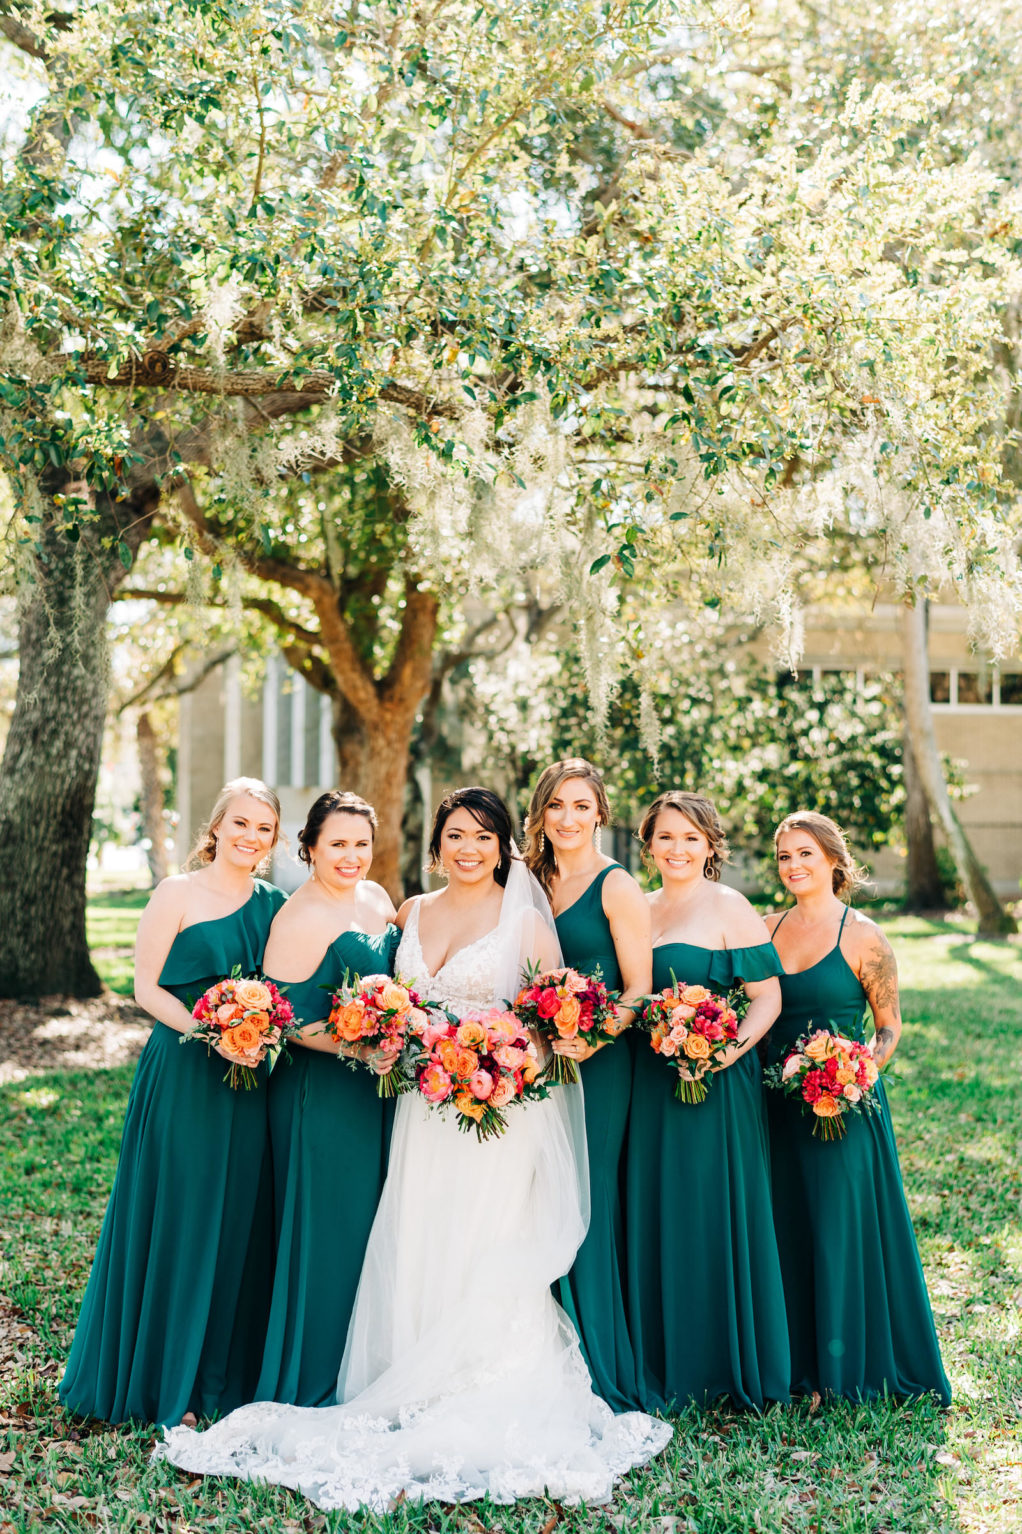 Classic Bride and Bridesmaids Outdoors in Mix and Match in Emerald Green Dresses Holding Vibrant Colorful Pink, Orange and Red Floral Bouquets   Wedding Venue Tampa Garden Club   Tampa Bay Wedding Florist Monarch Events and Design